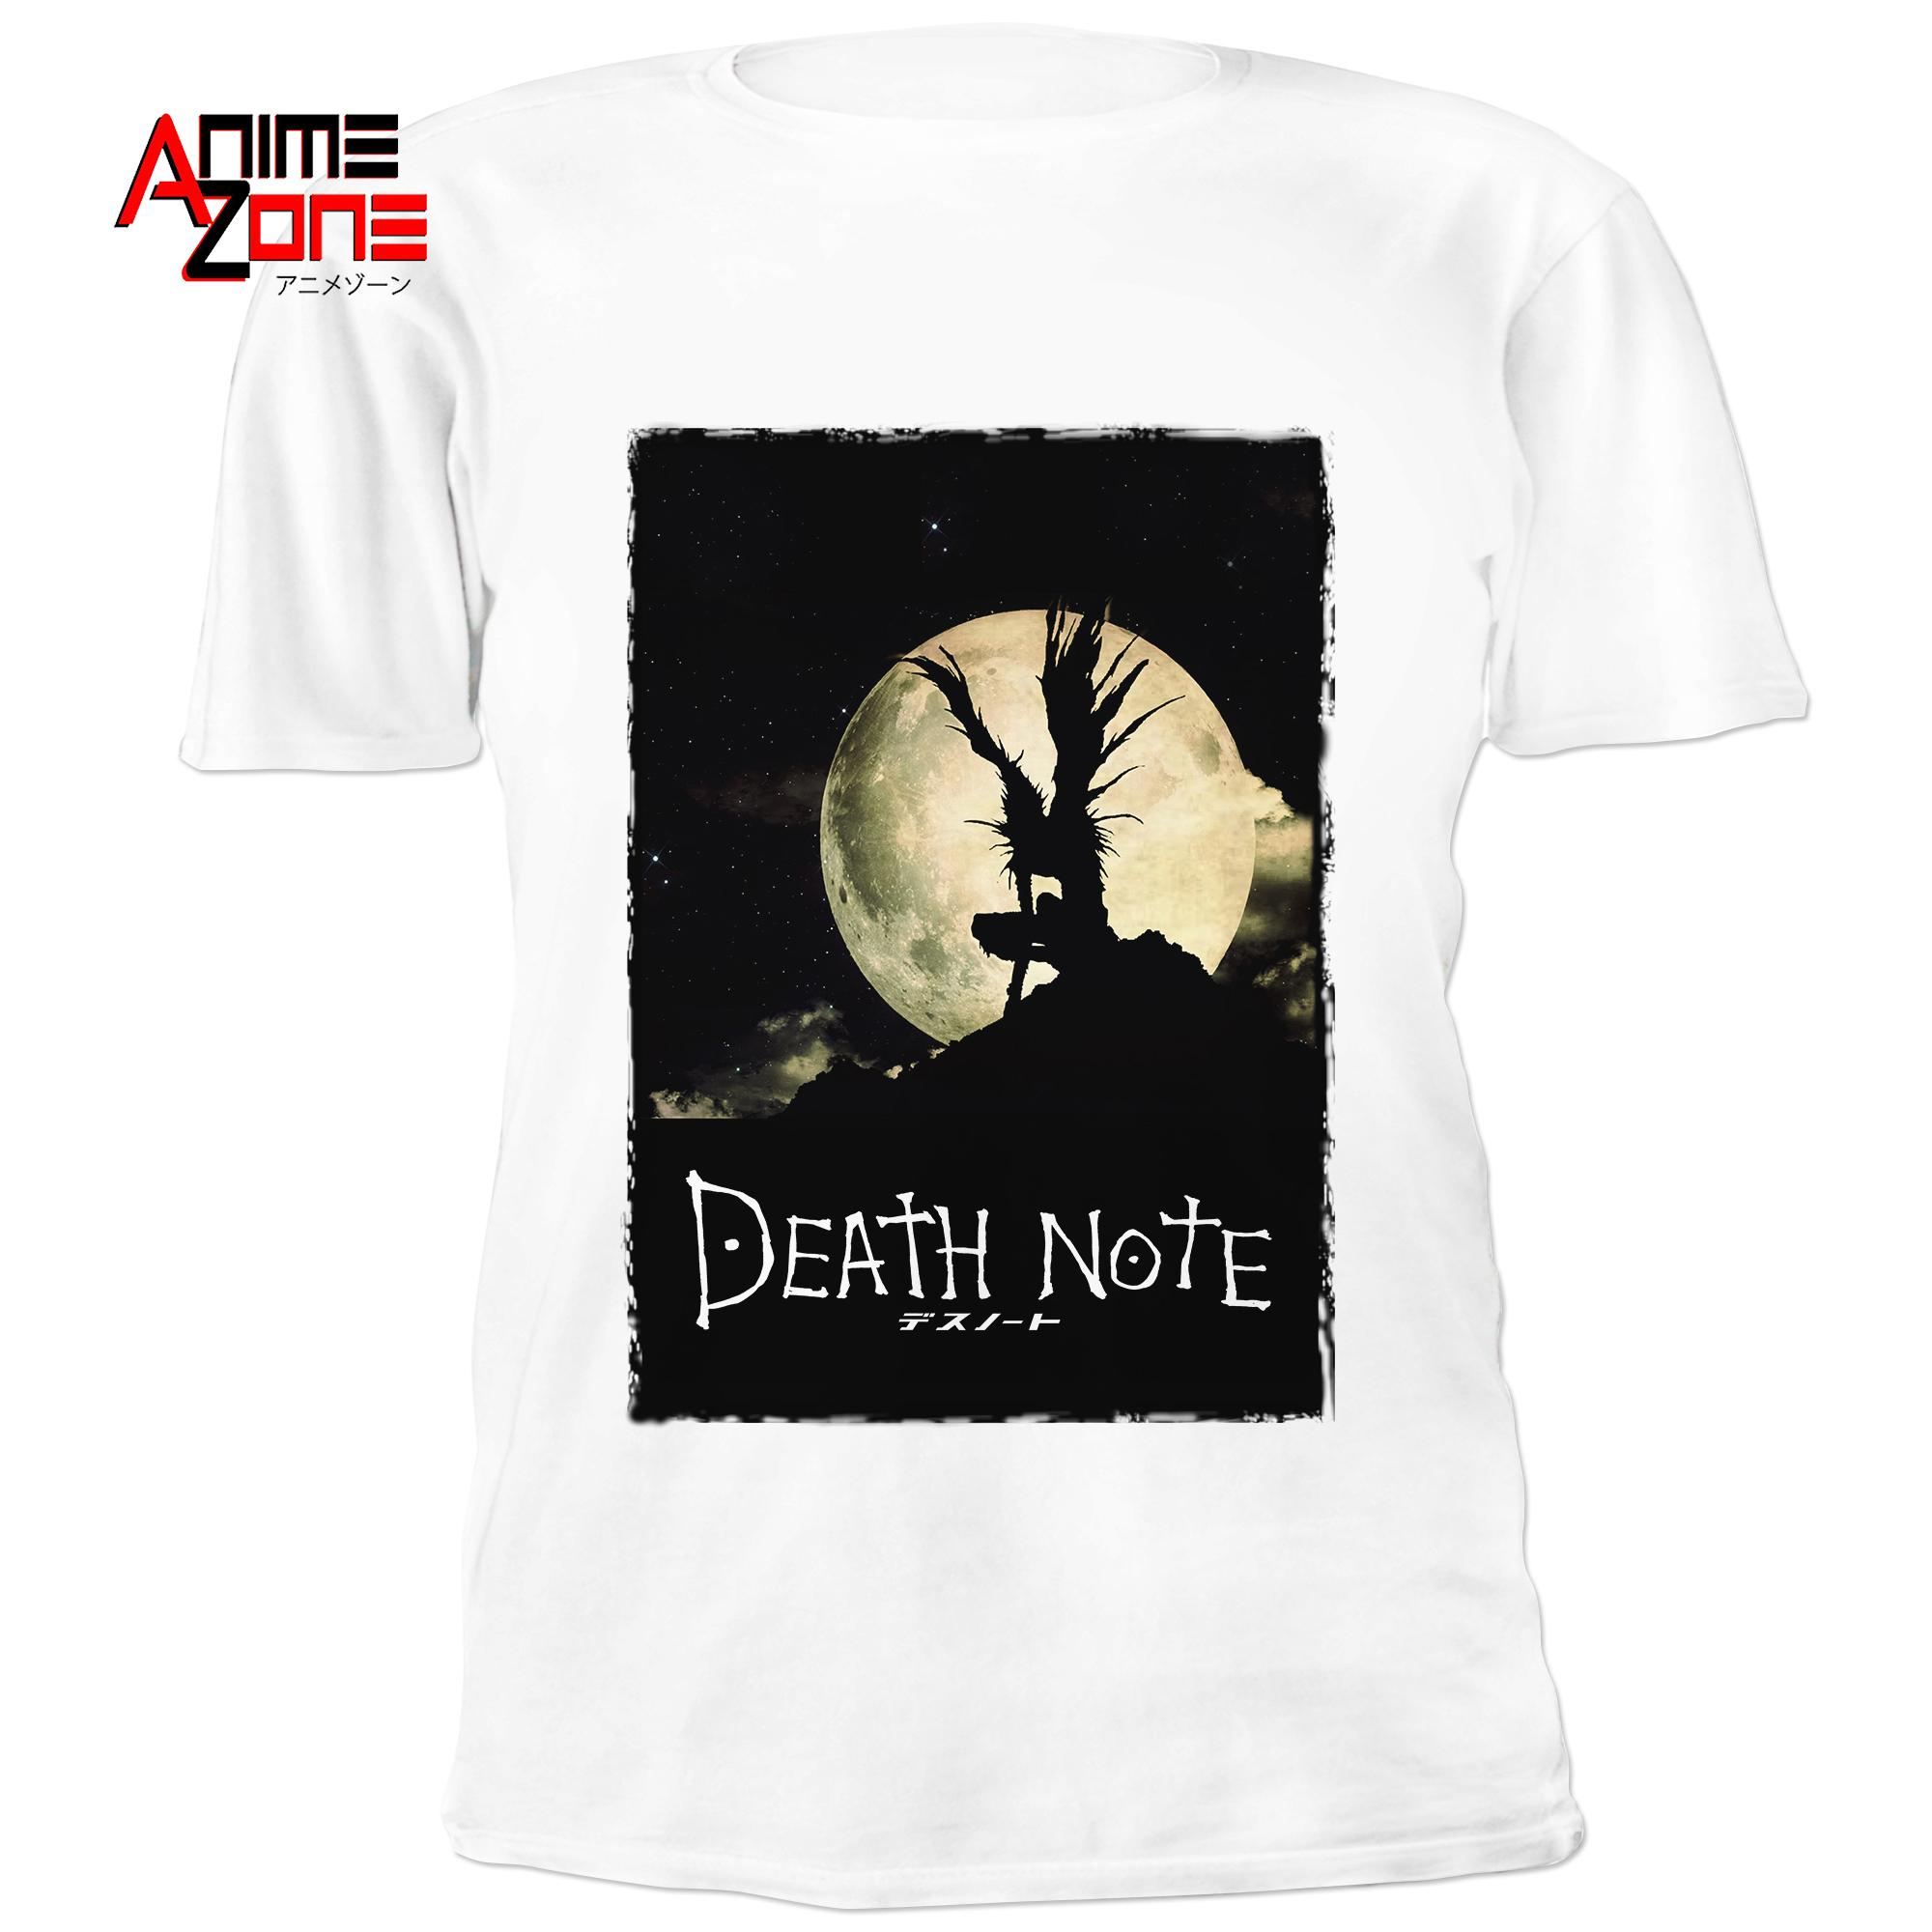 529237149 Anime Zone Shop Philippines - Anime Zone Shop T-Shirt Clothing for ...